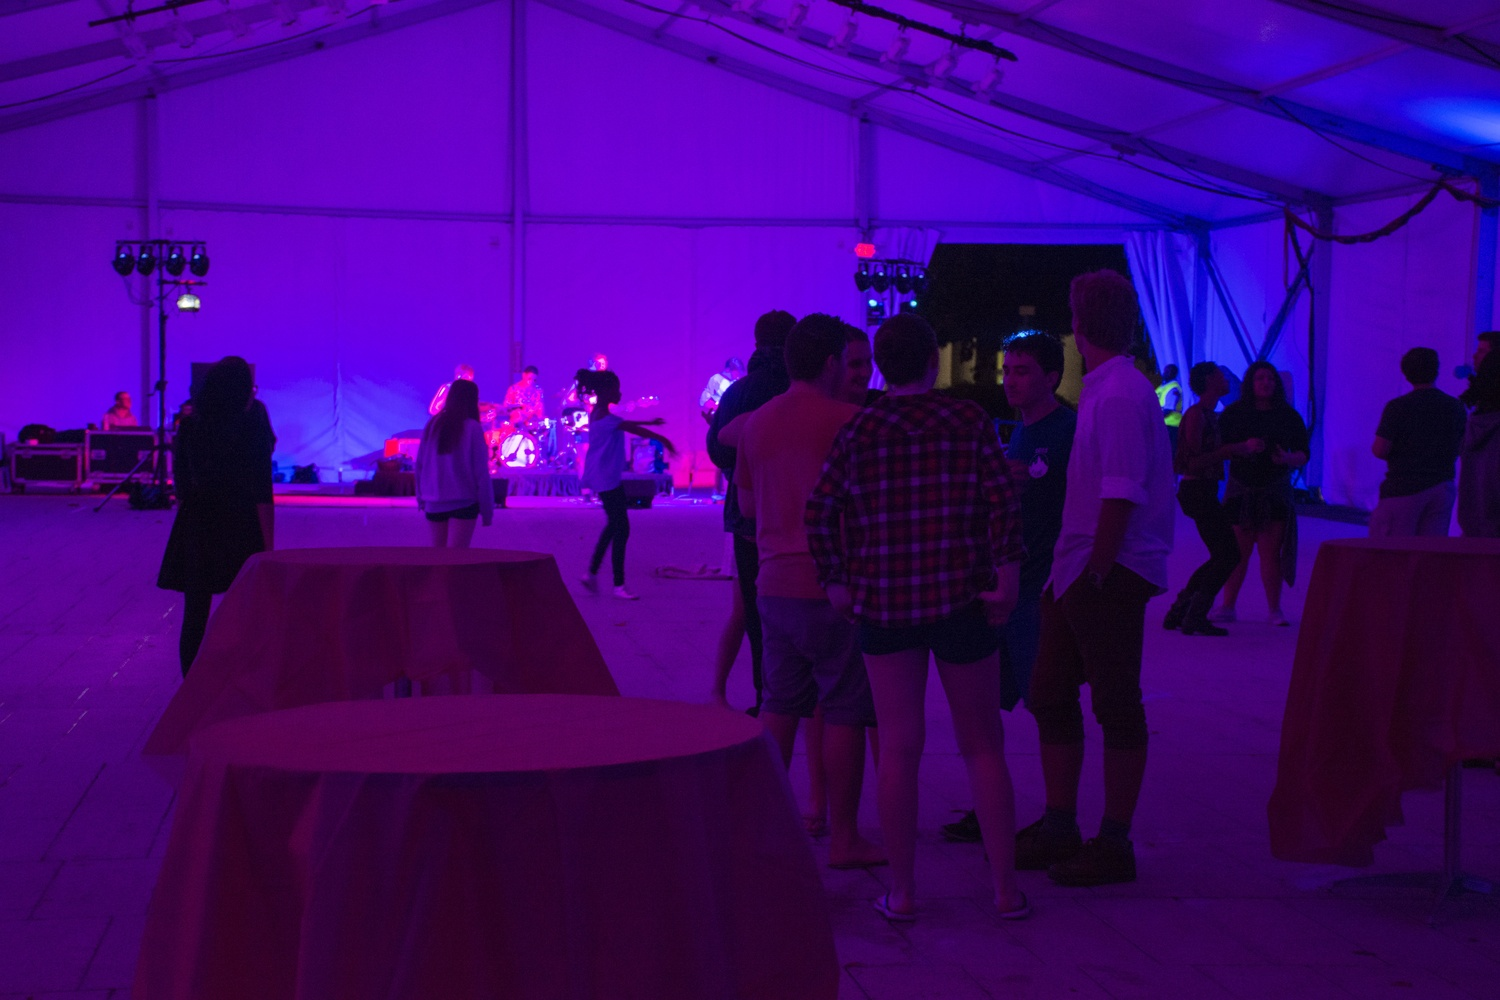 Undergraduates attend the [BLANK] Party under the Science Center Tent Friday evening. [BLANK] Party was hosted by women's groups at Harvard, with a focus on inclusion of students of all identities.